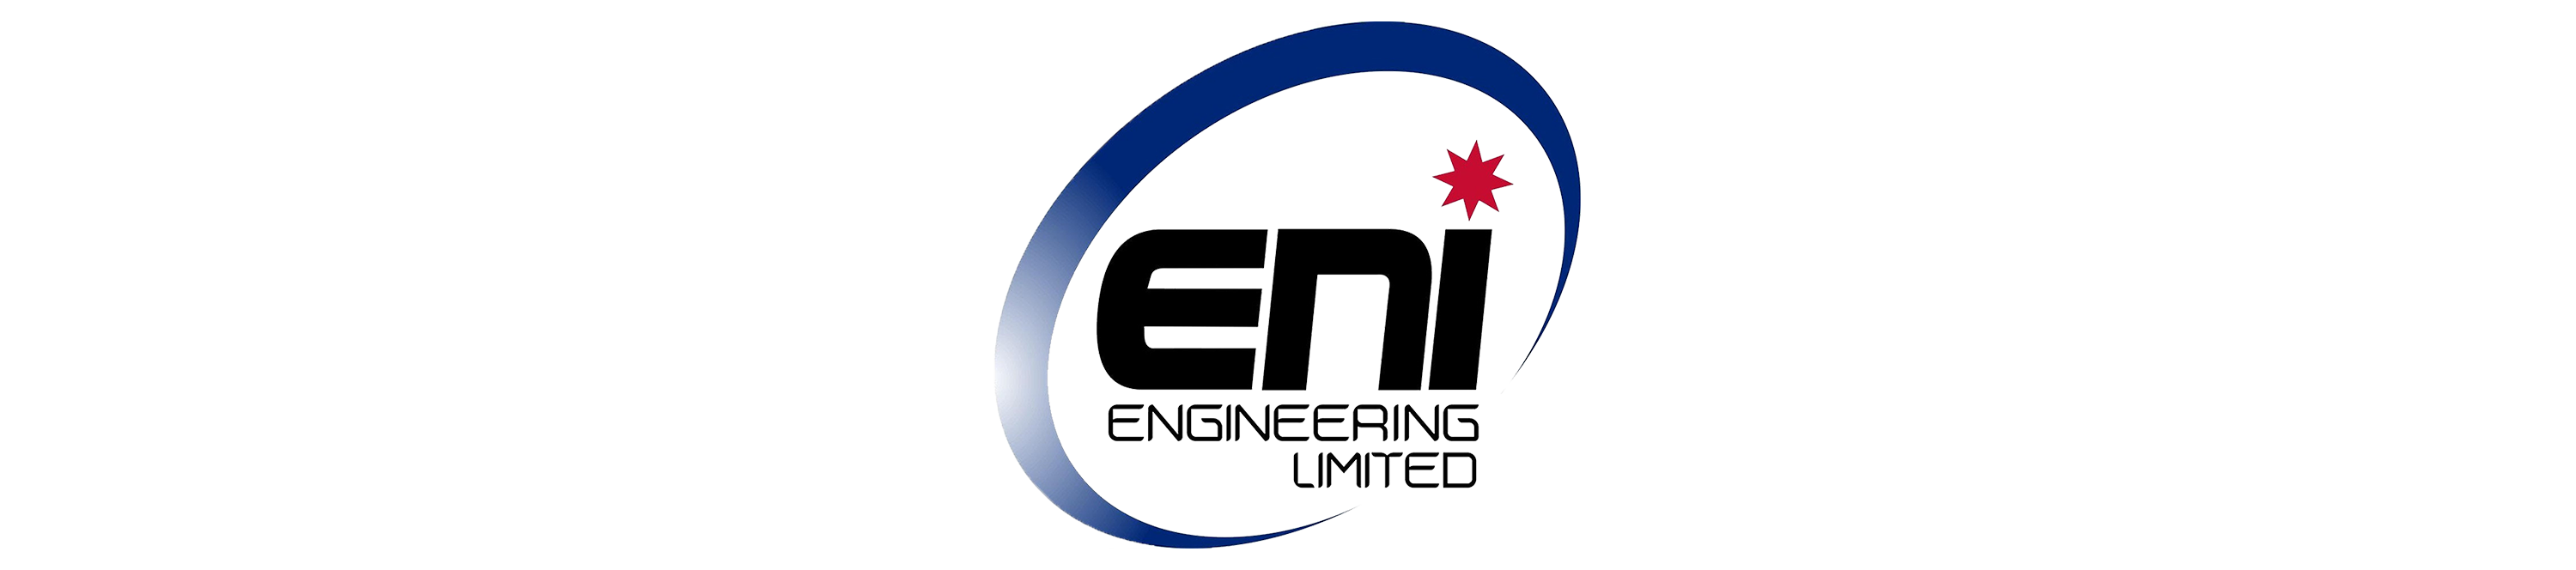 eni logo transparent